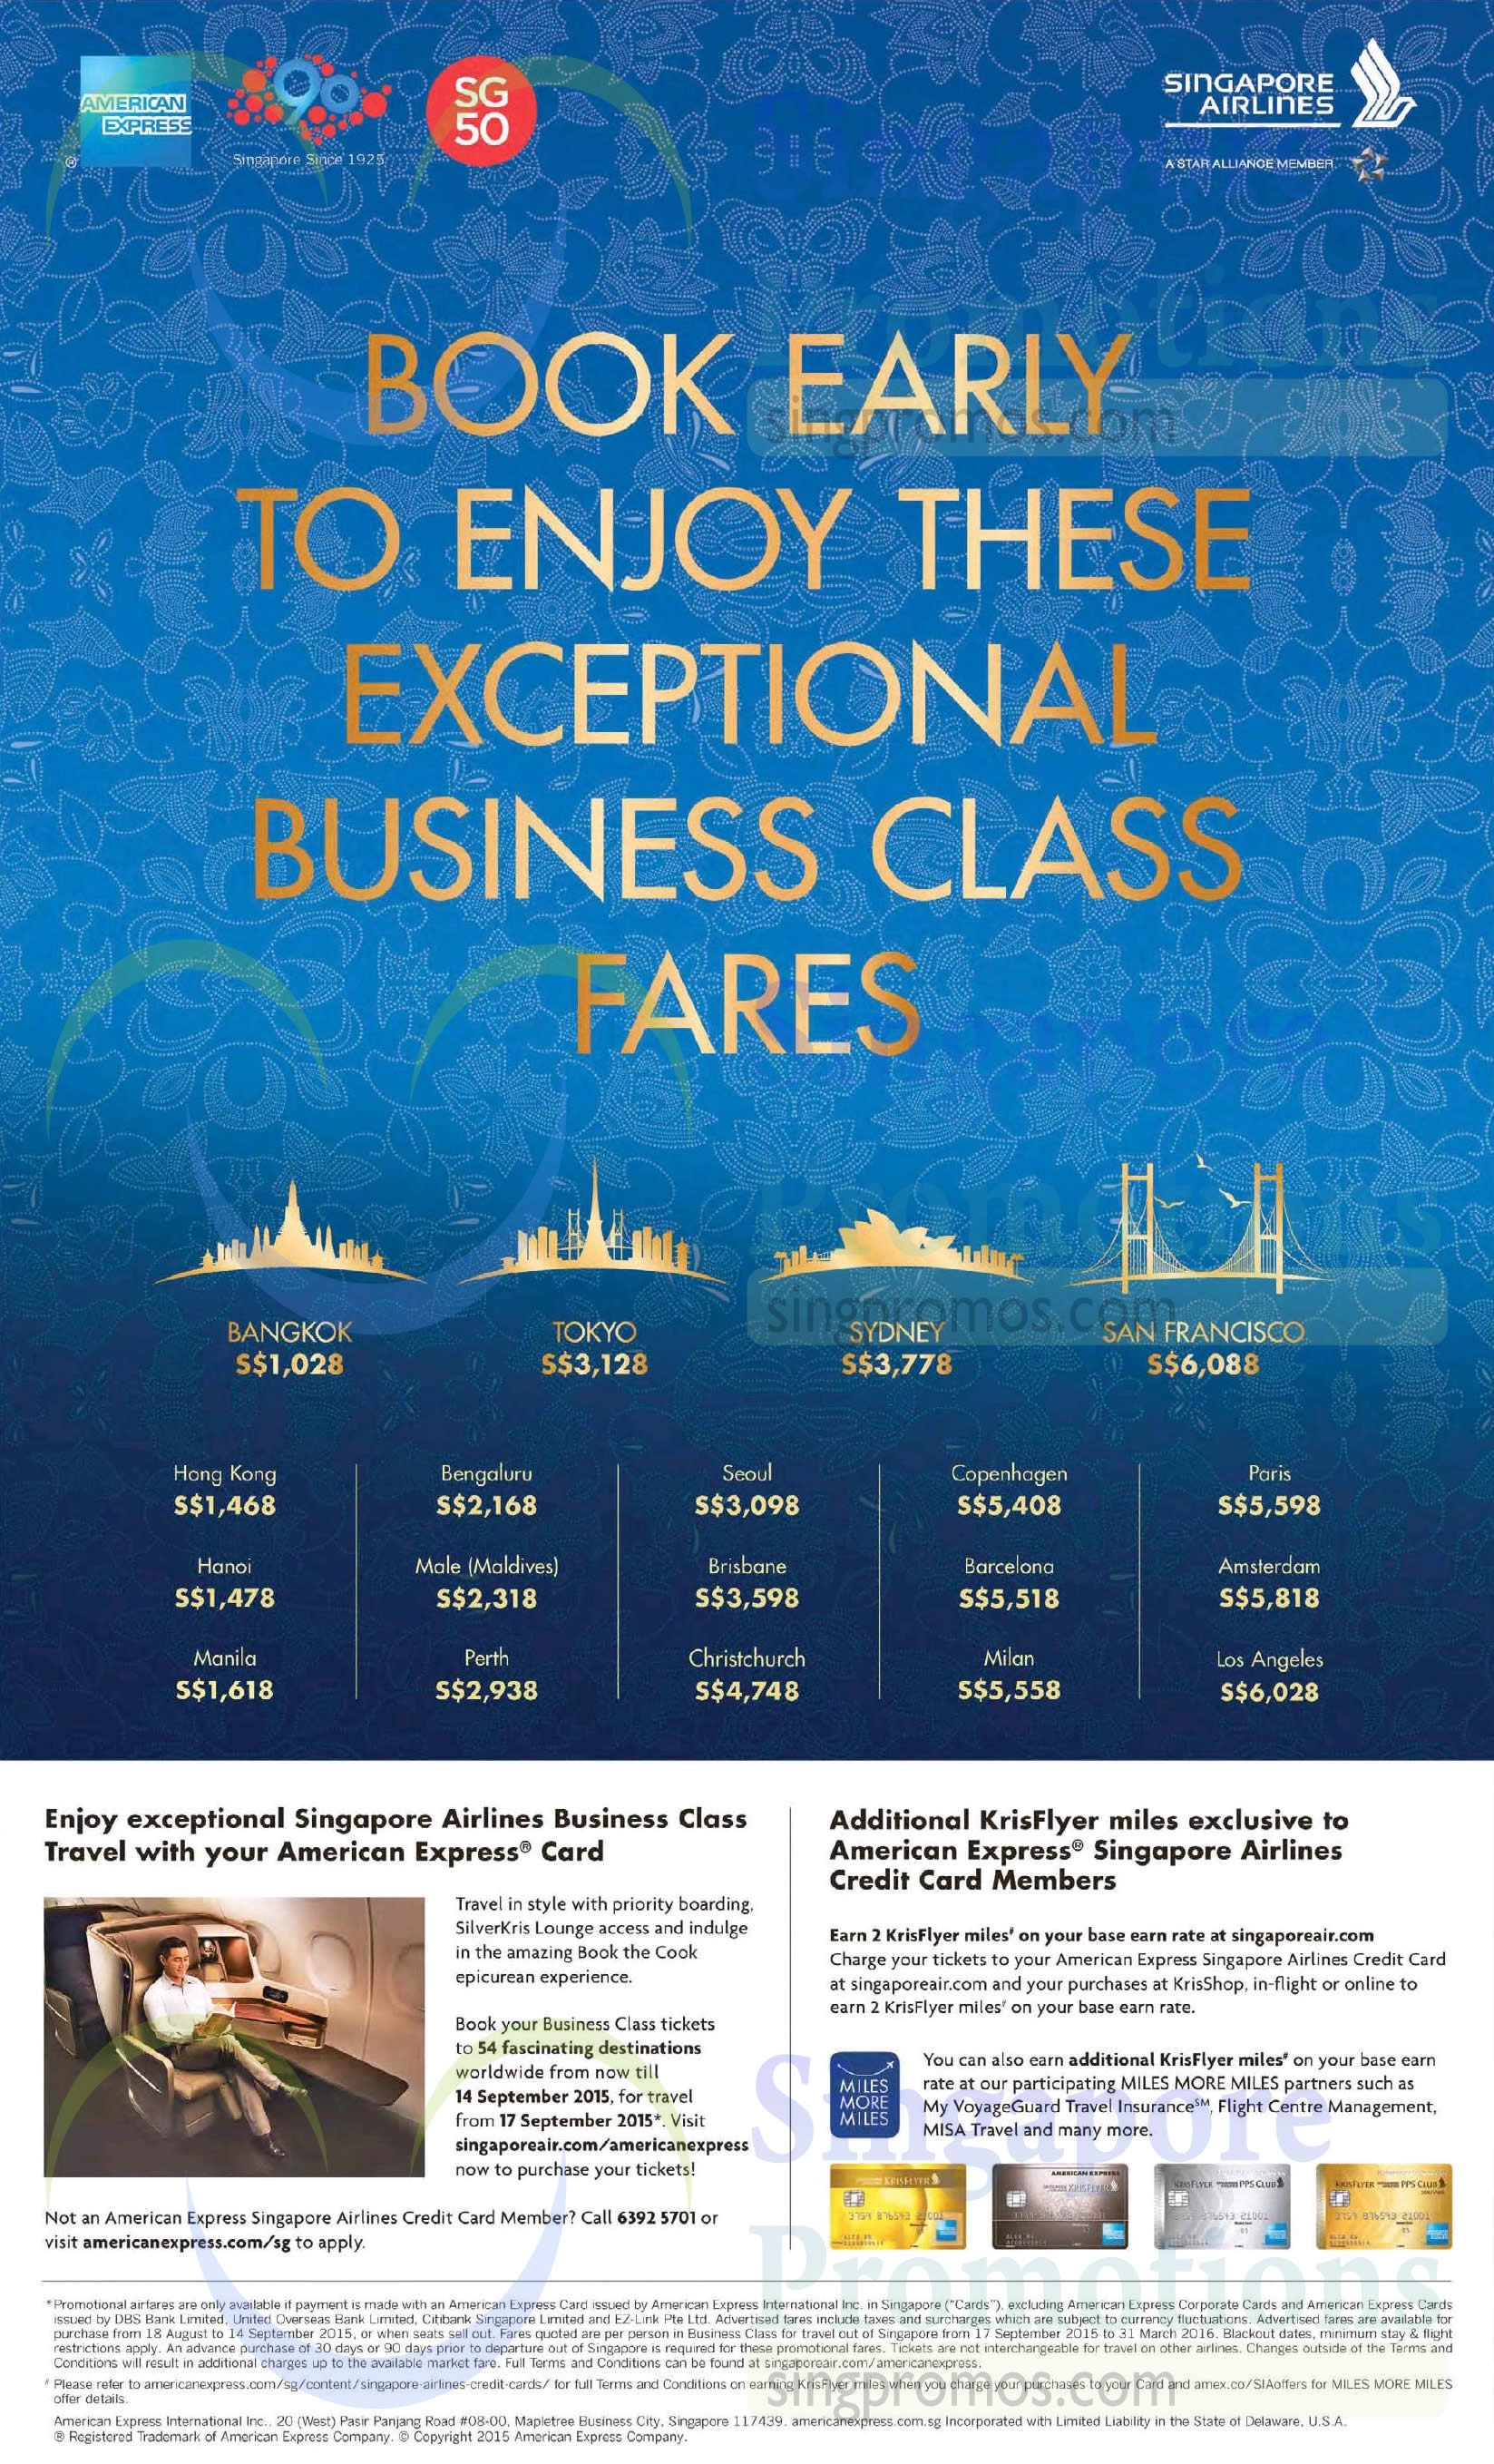 singapore airlines business class promo fares for amex cardmembers